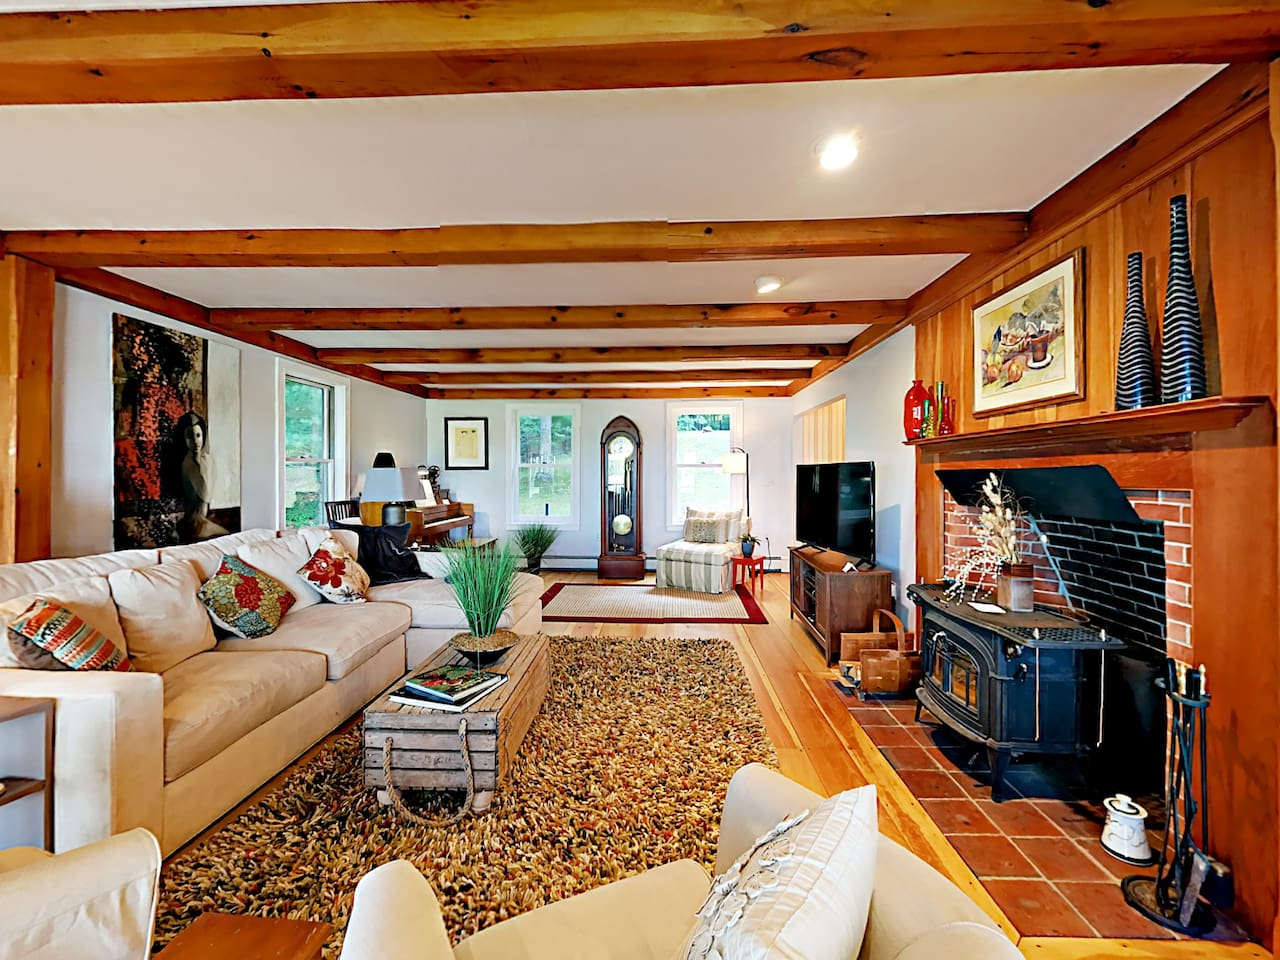 Welcome to Phippsburg! This property is professionally managed by Turnkey Vacation Rentals.